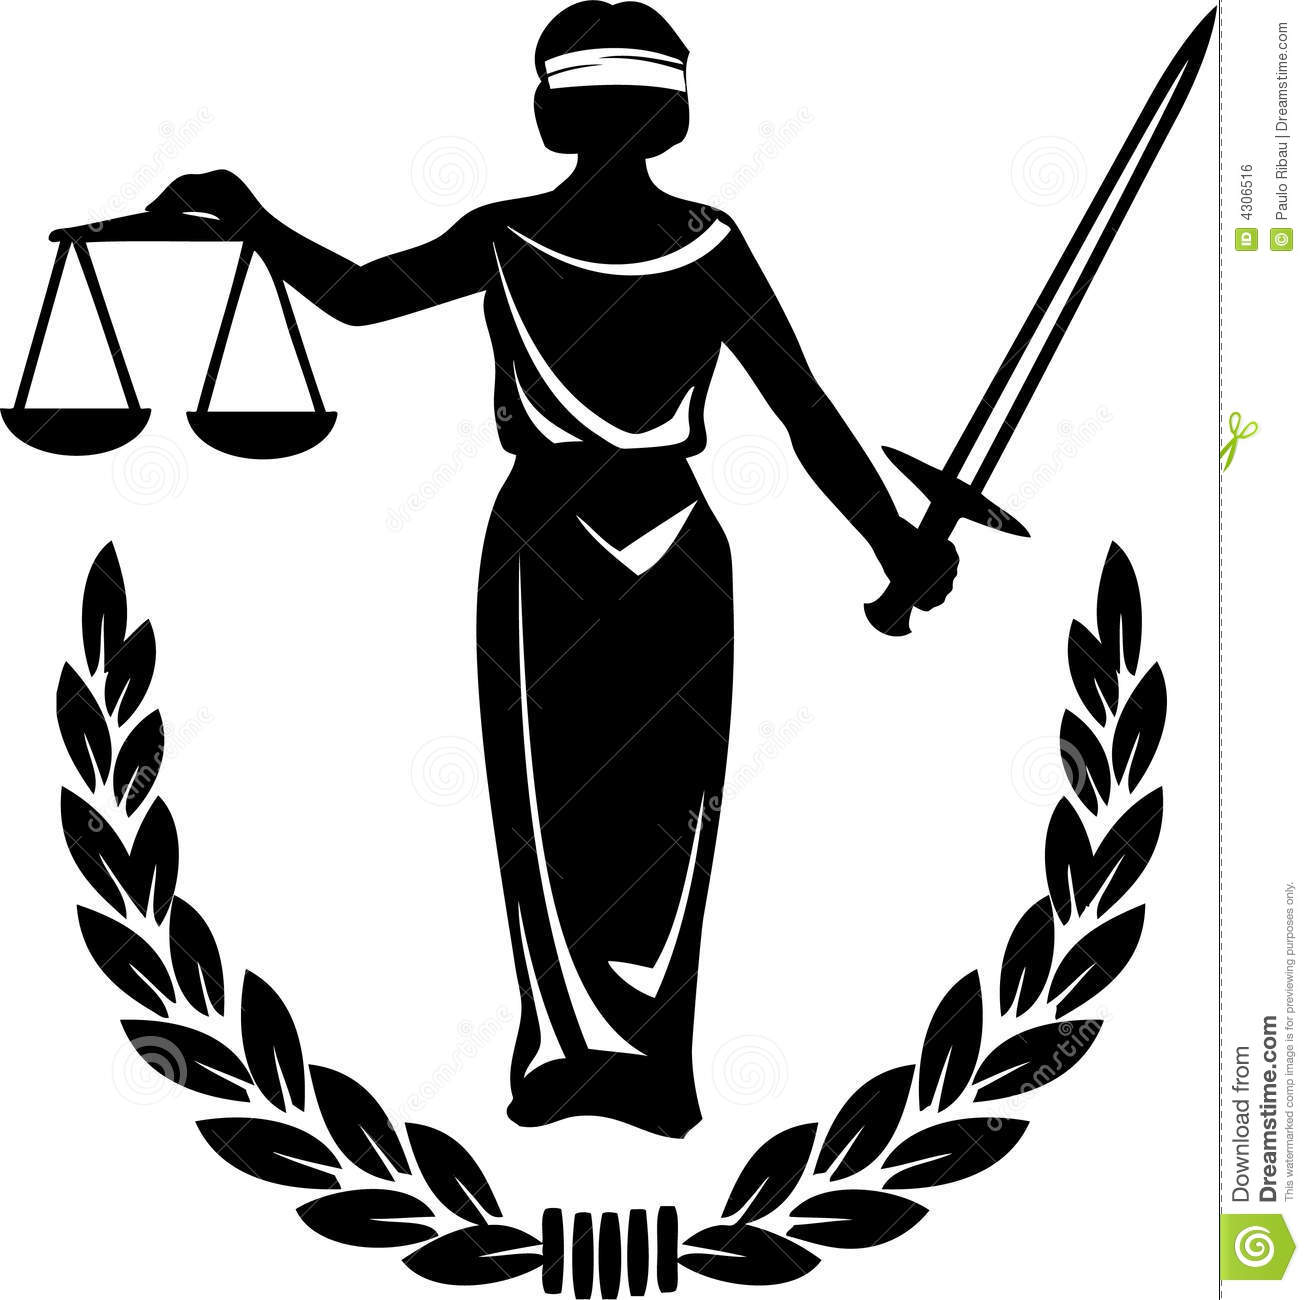 Illustration of a silhouette holding the scales of justice.